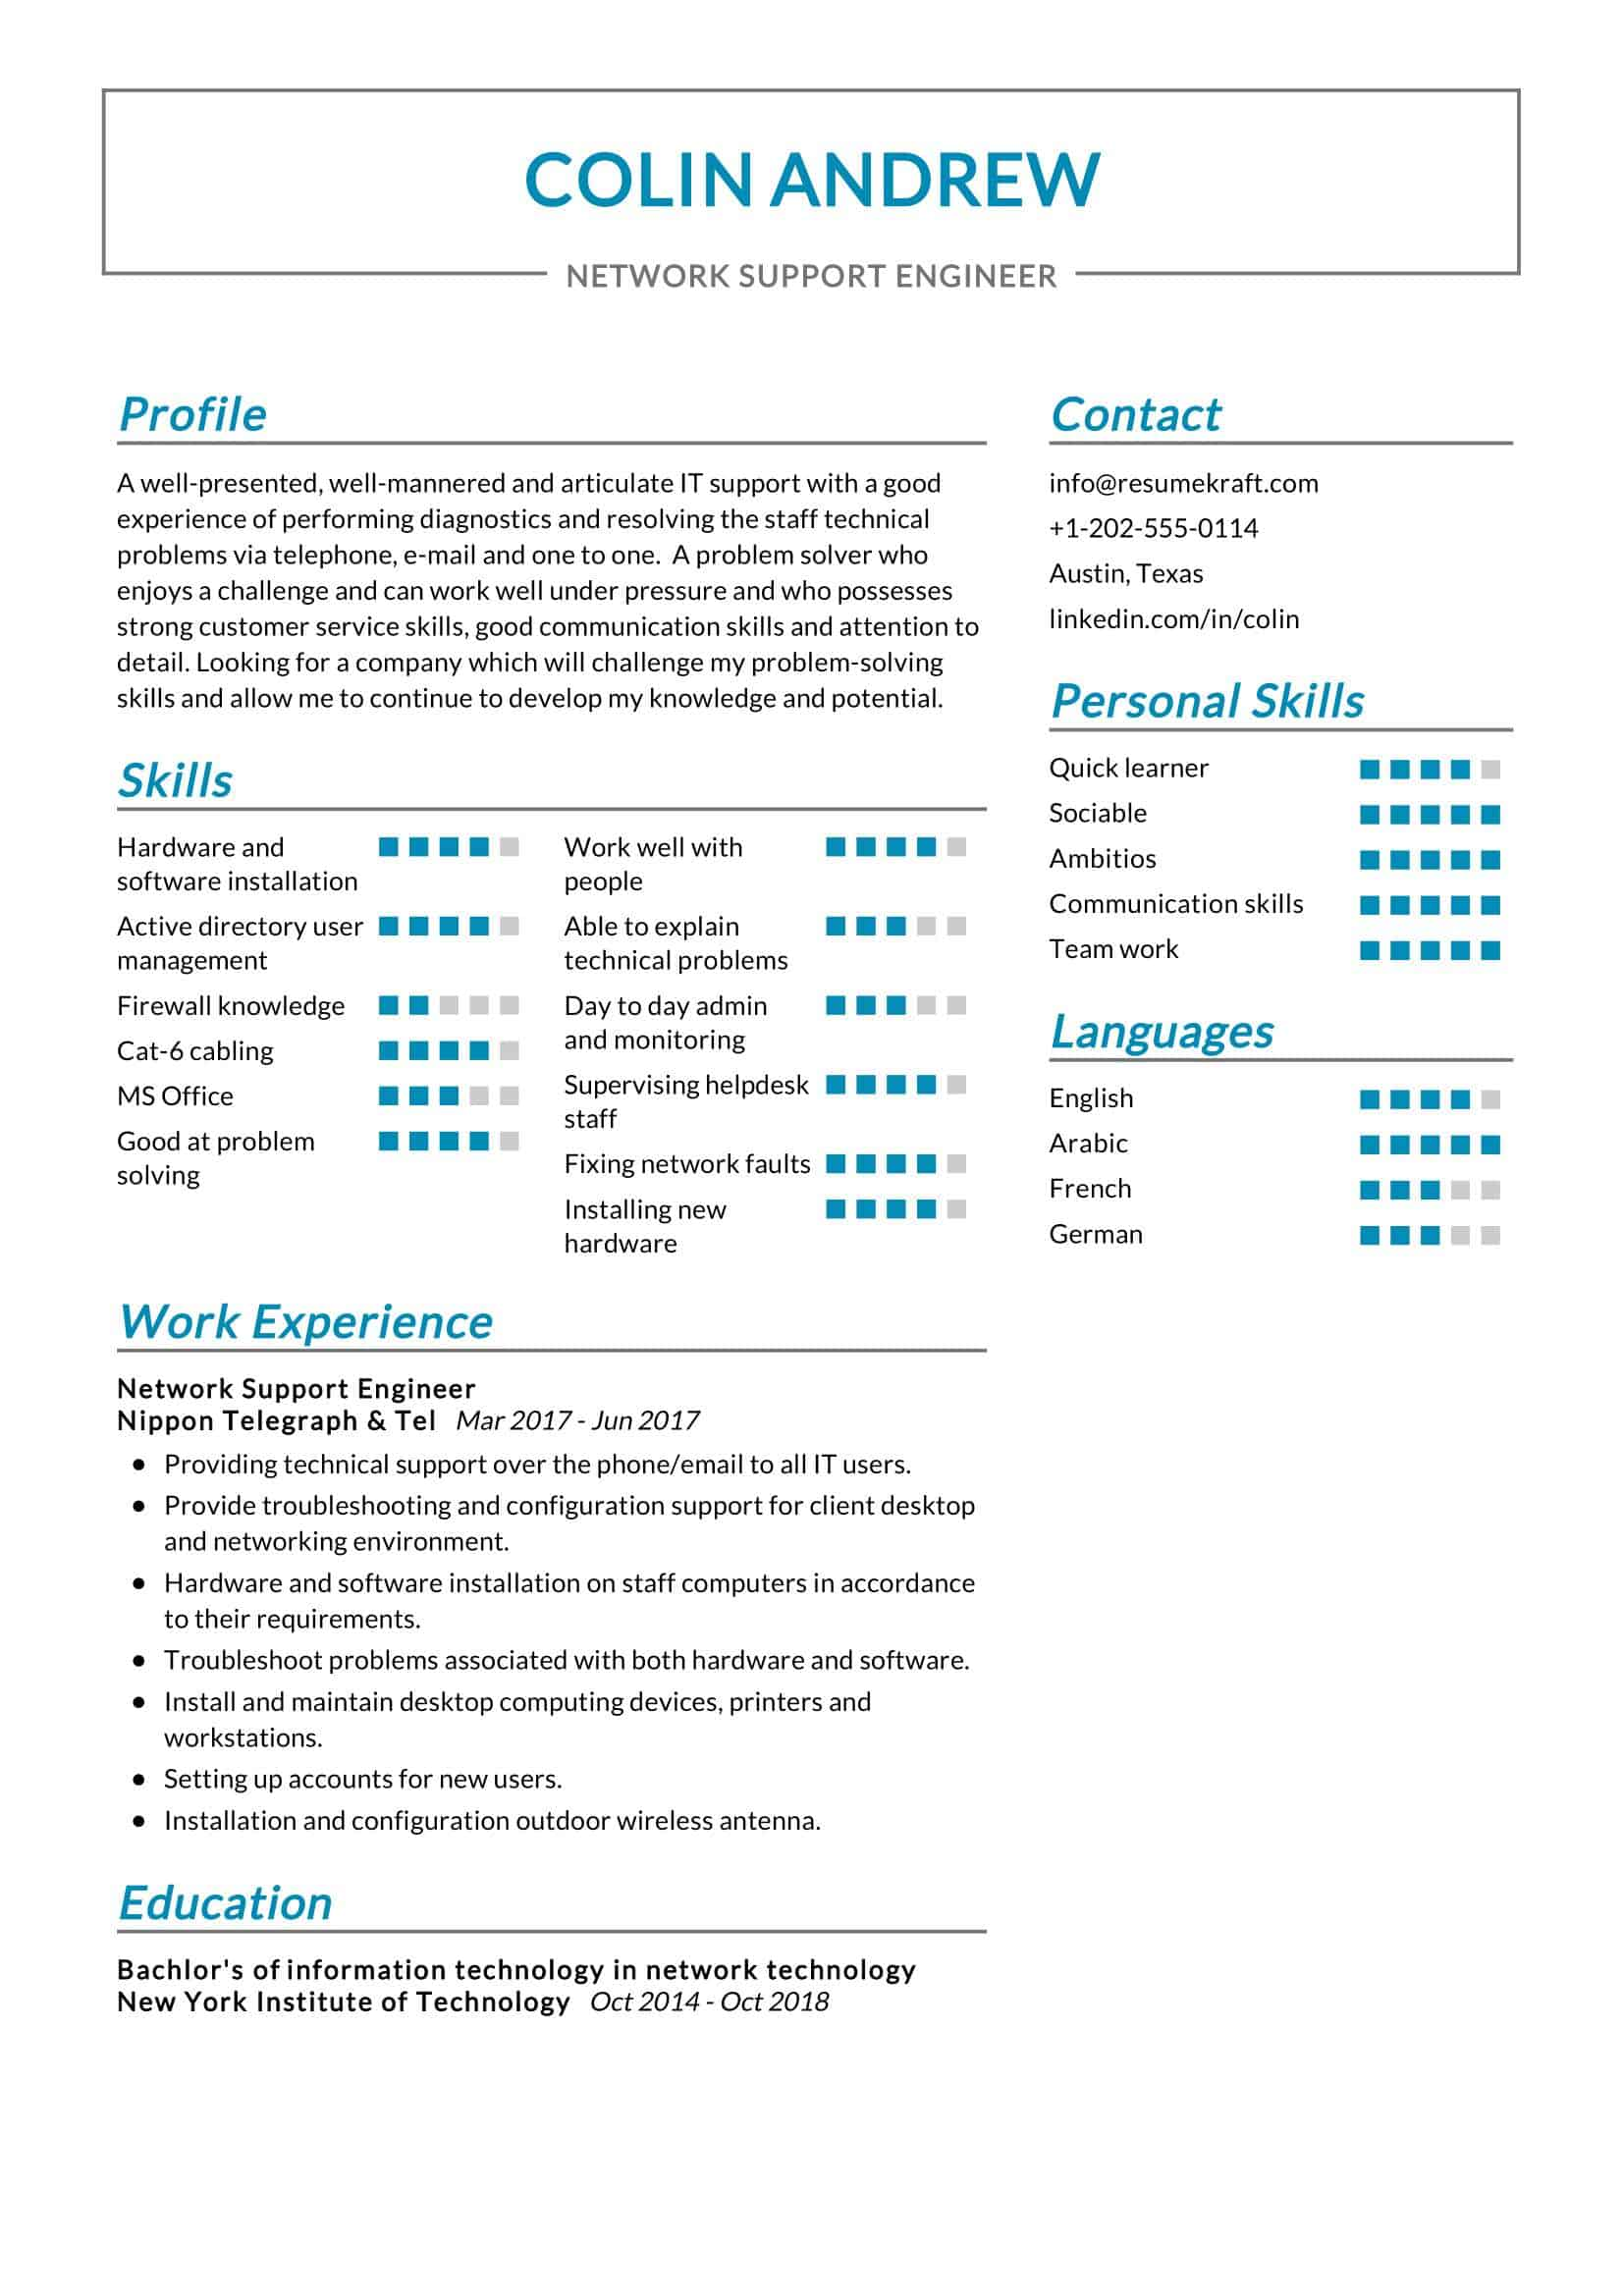 Network Support Engineer Resume Sample Resumekraft